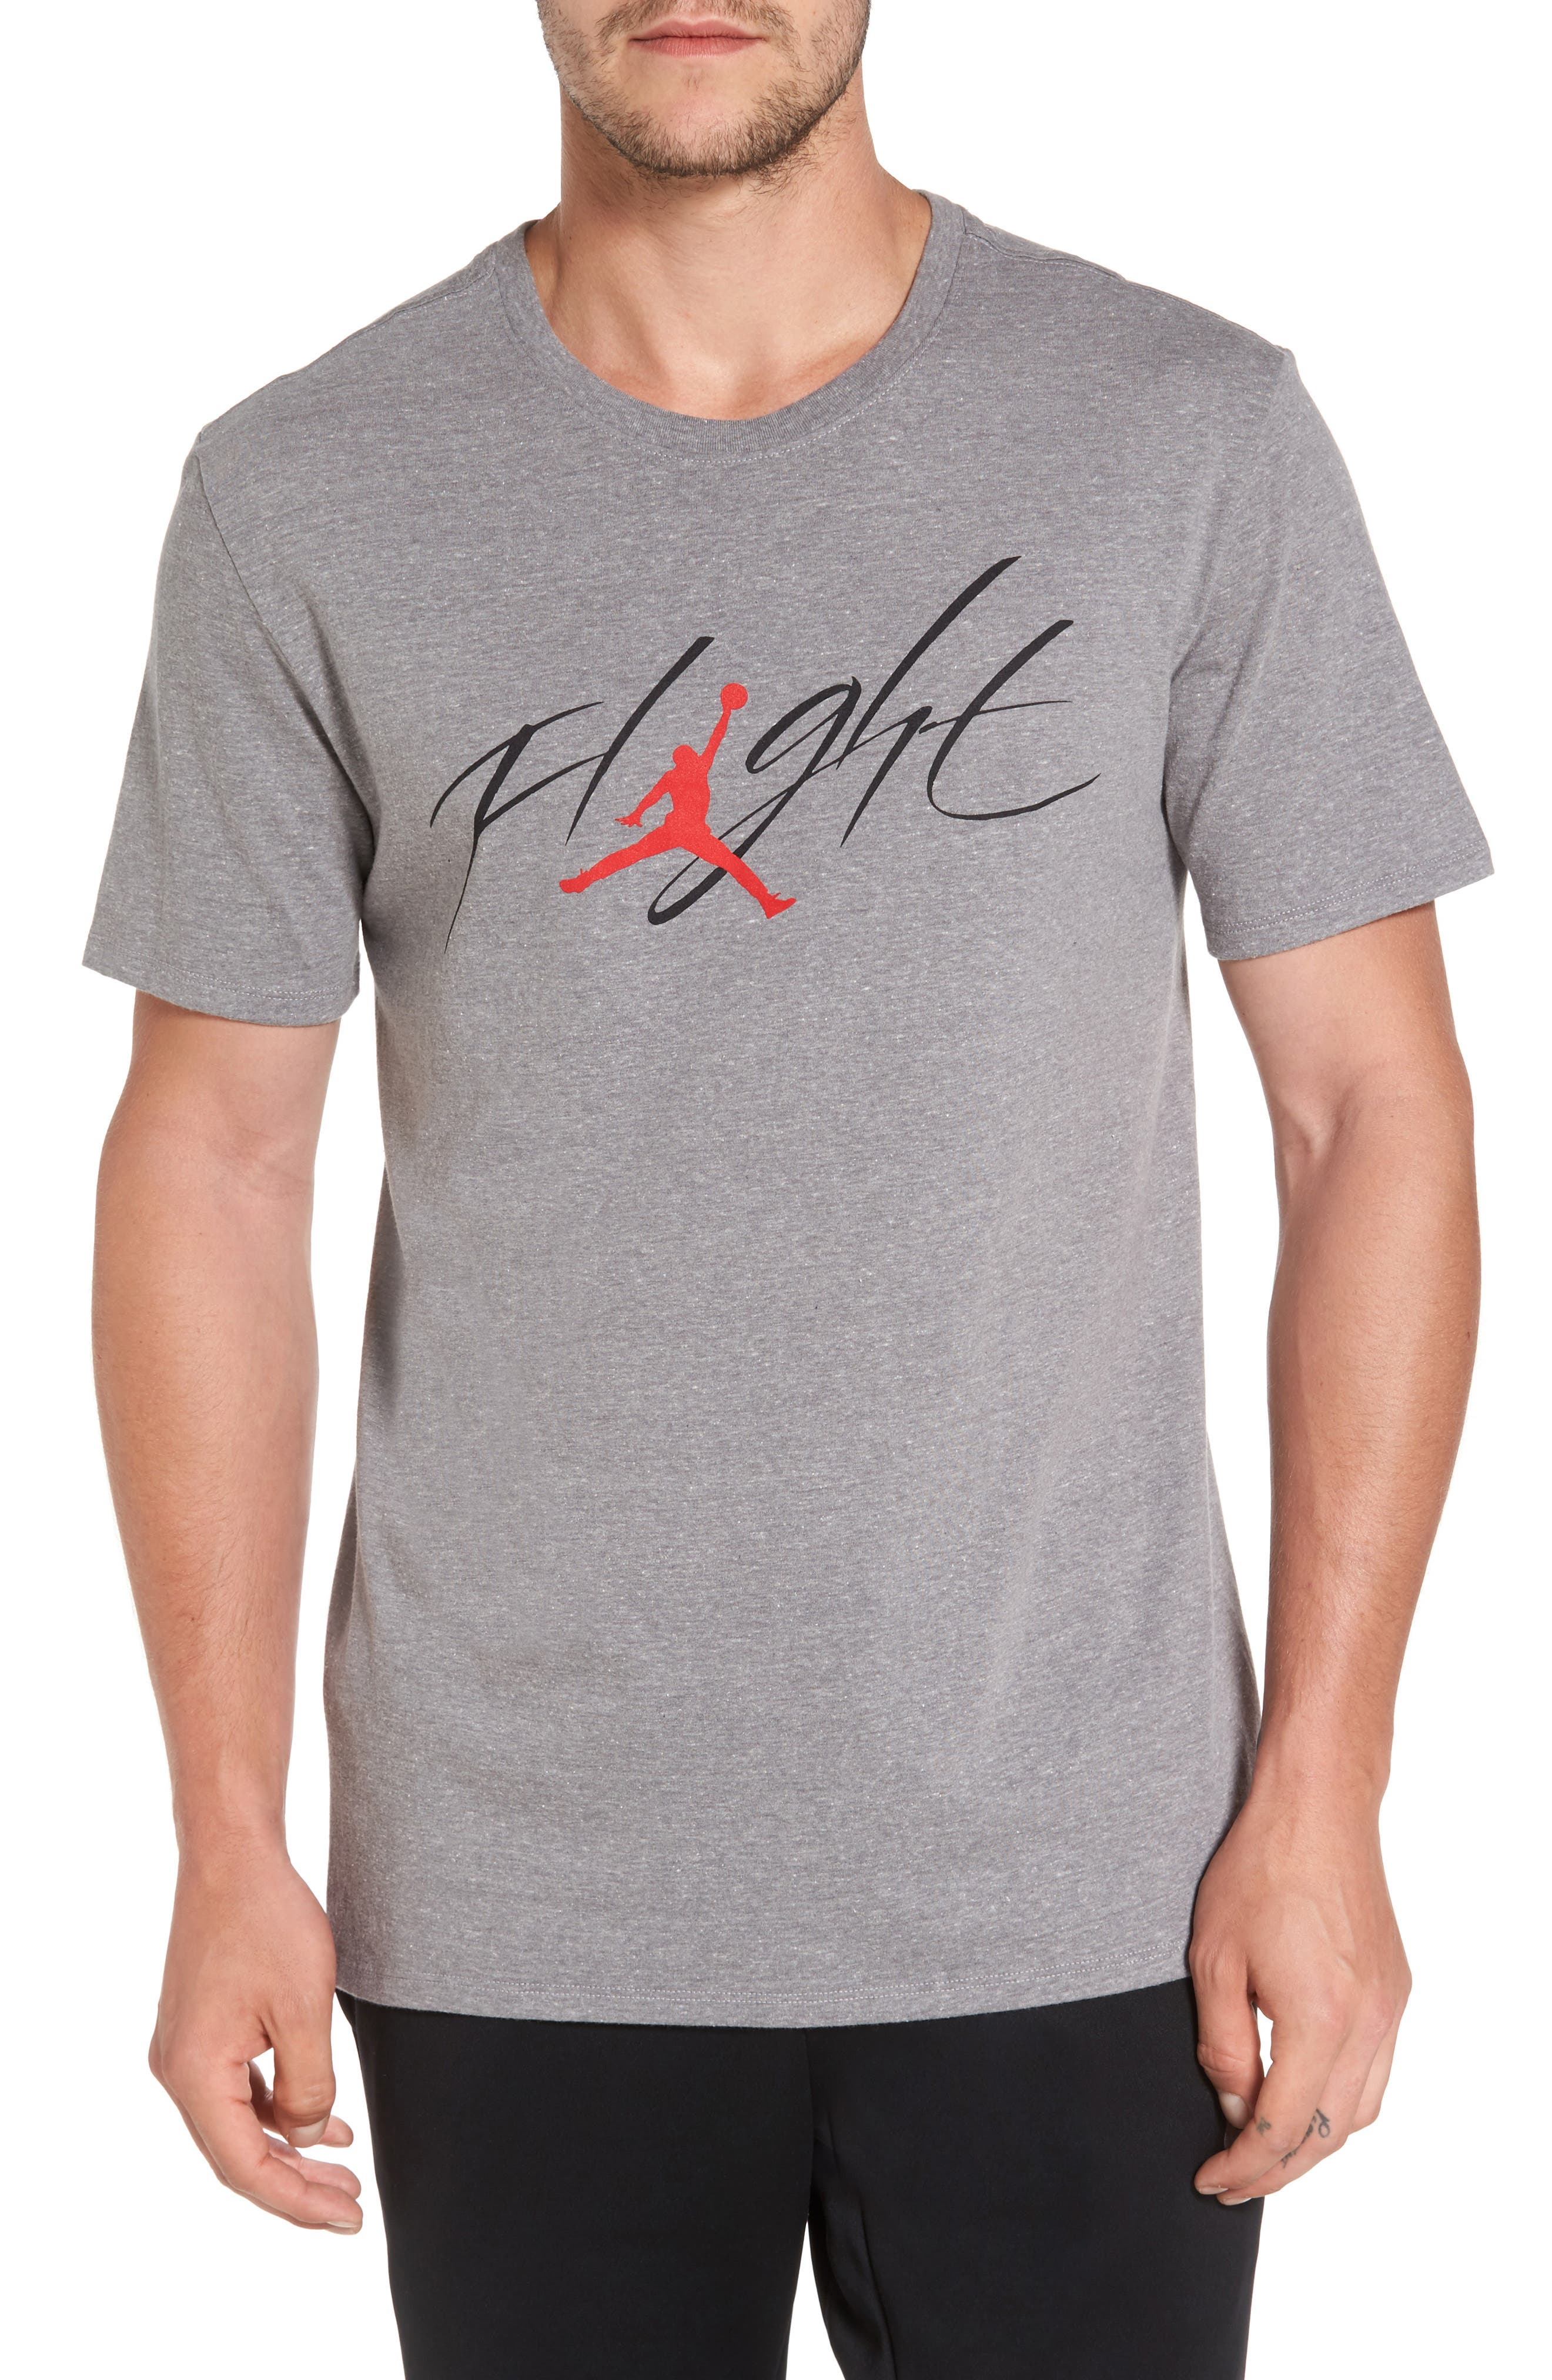 Sportswear Flight T-Shirt,                         Main,                         color, Carbon Heather/ Black/ Red